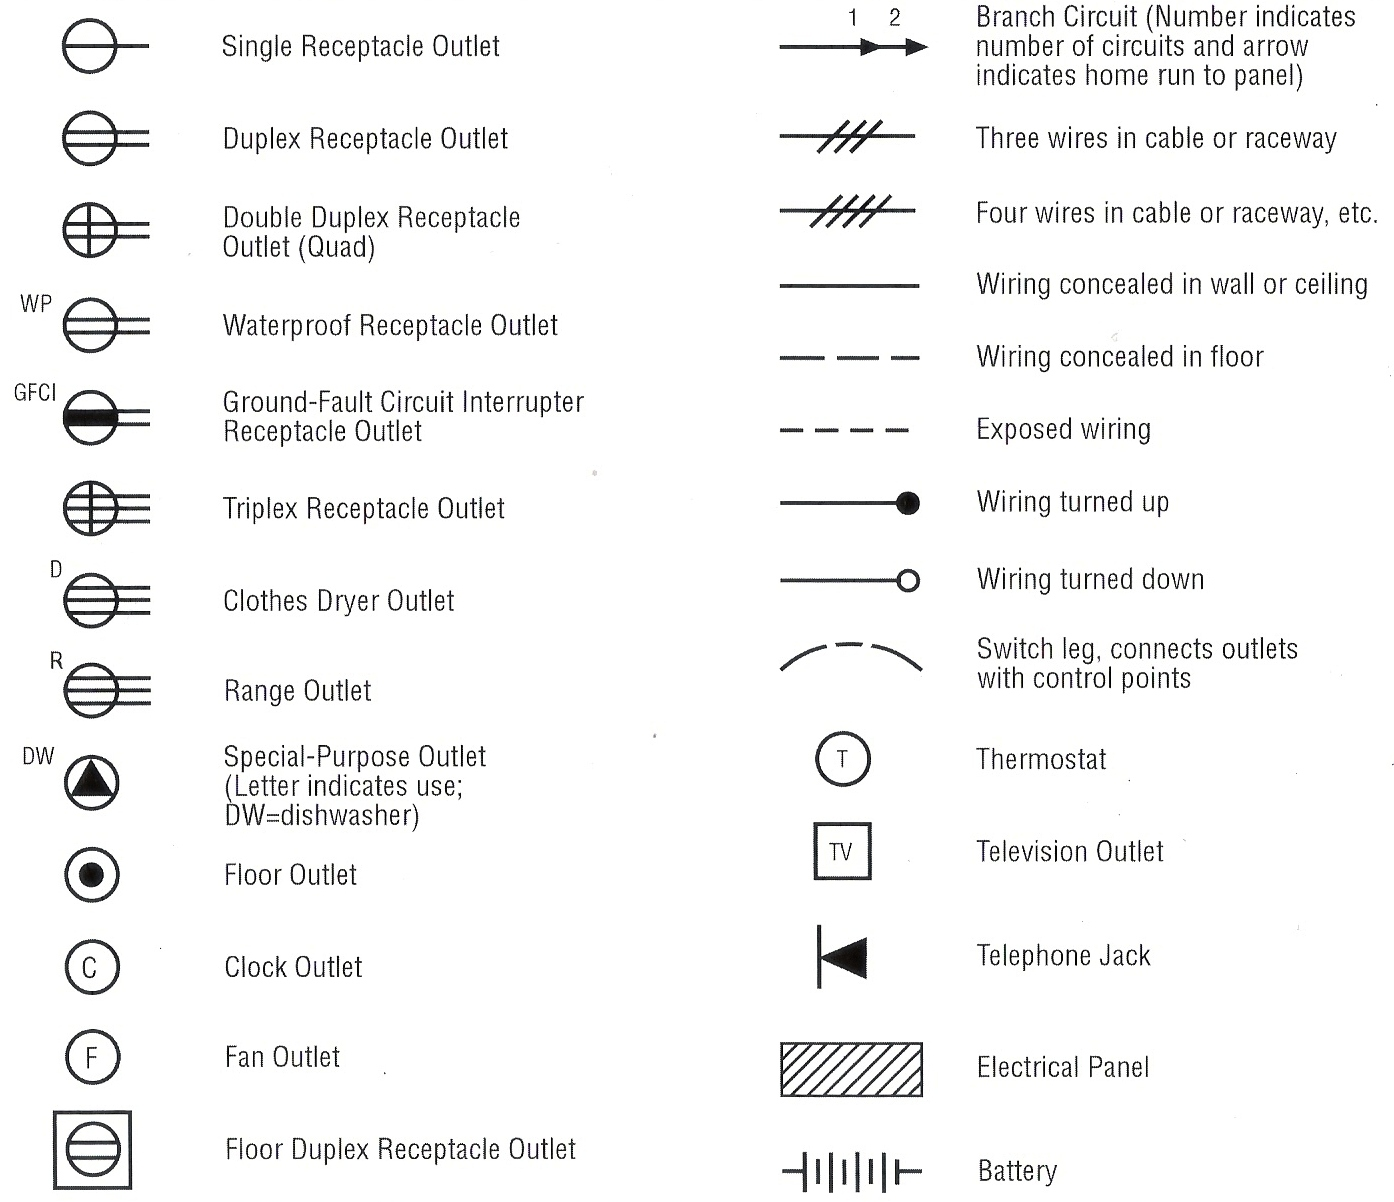 Electrical Panel Wiring Diagram Symbols 3 Phase Homes Service Entrance Get Free Image About